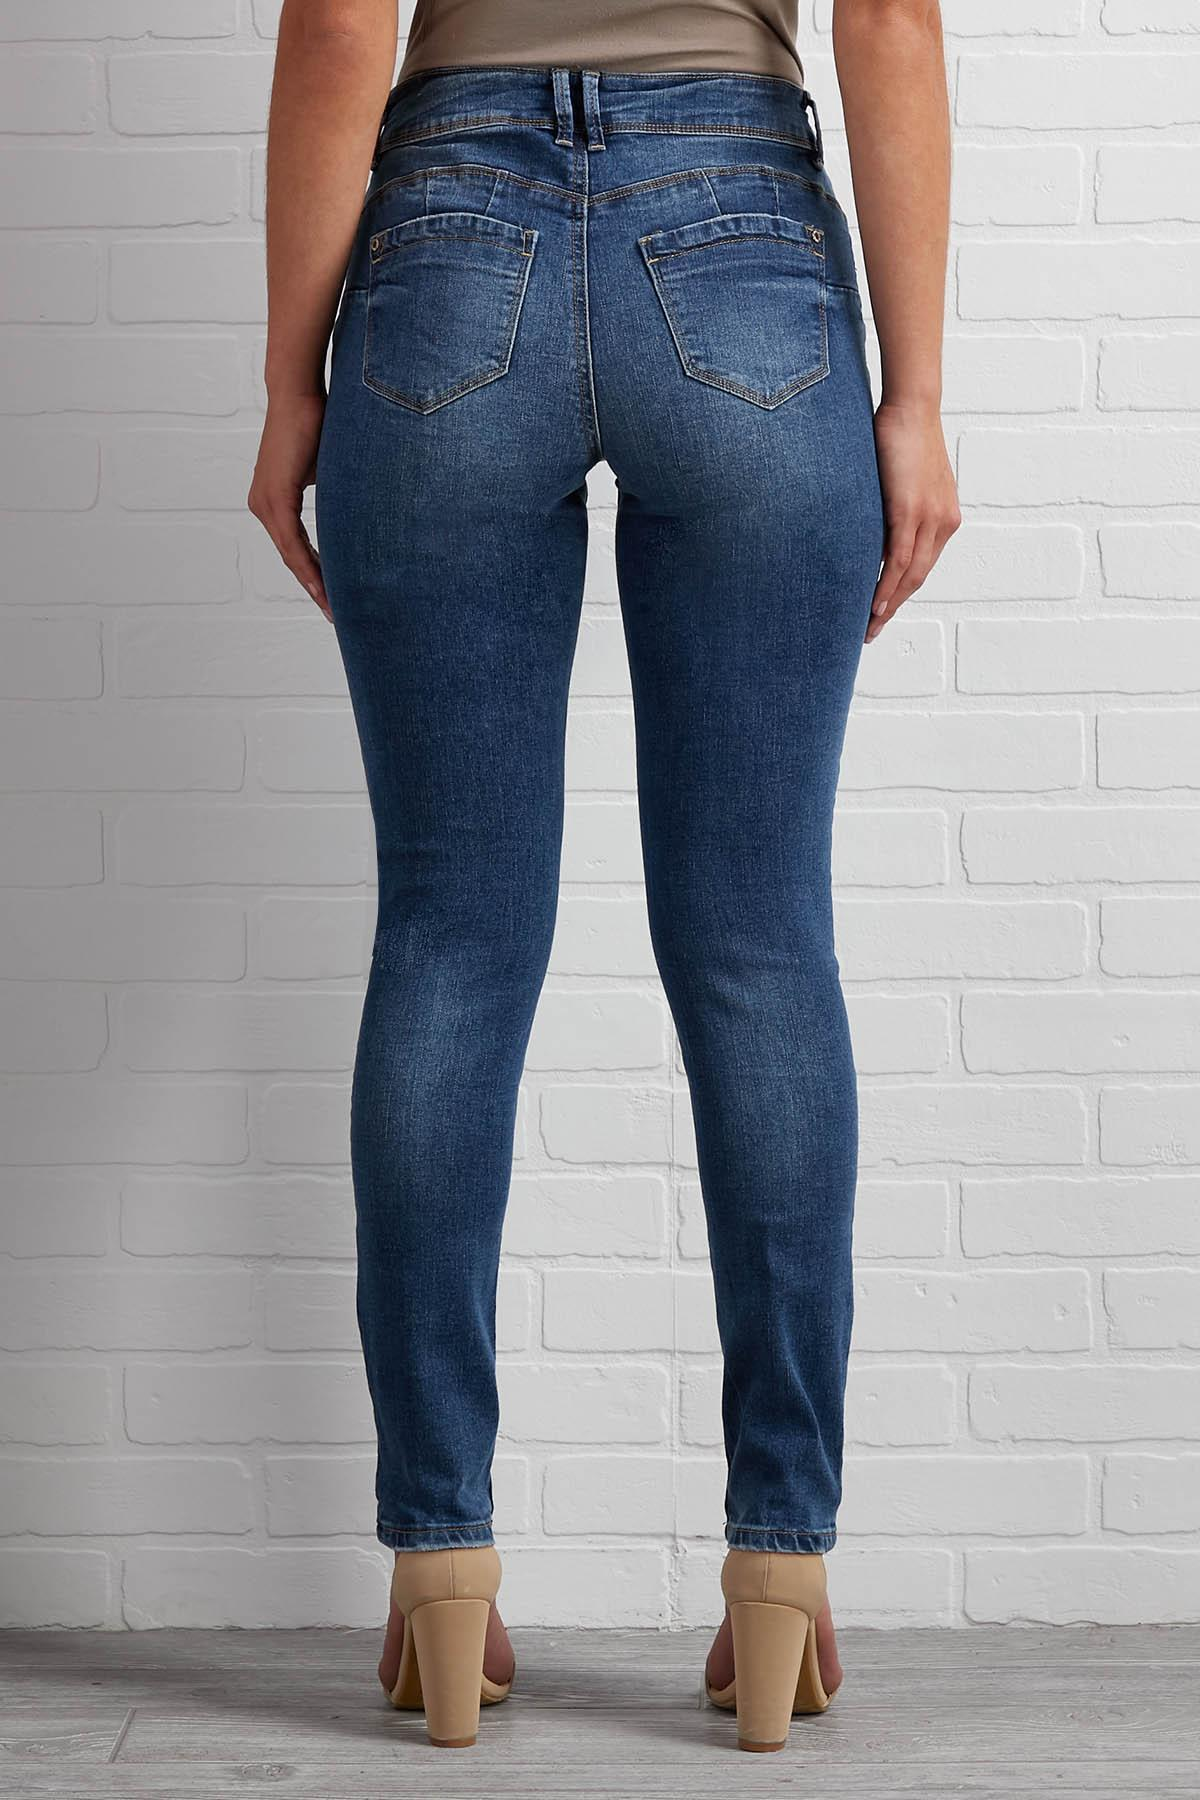 Cat's Scratch Out Of The Bag Jeans